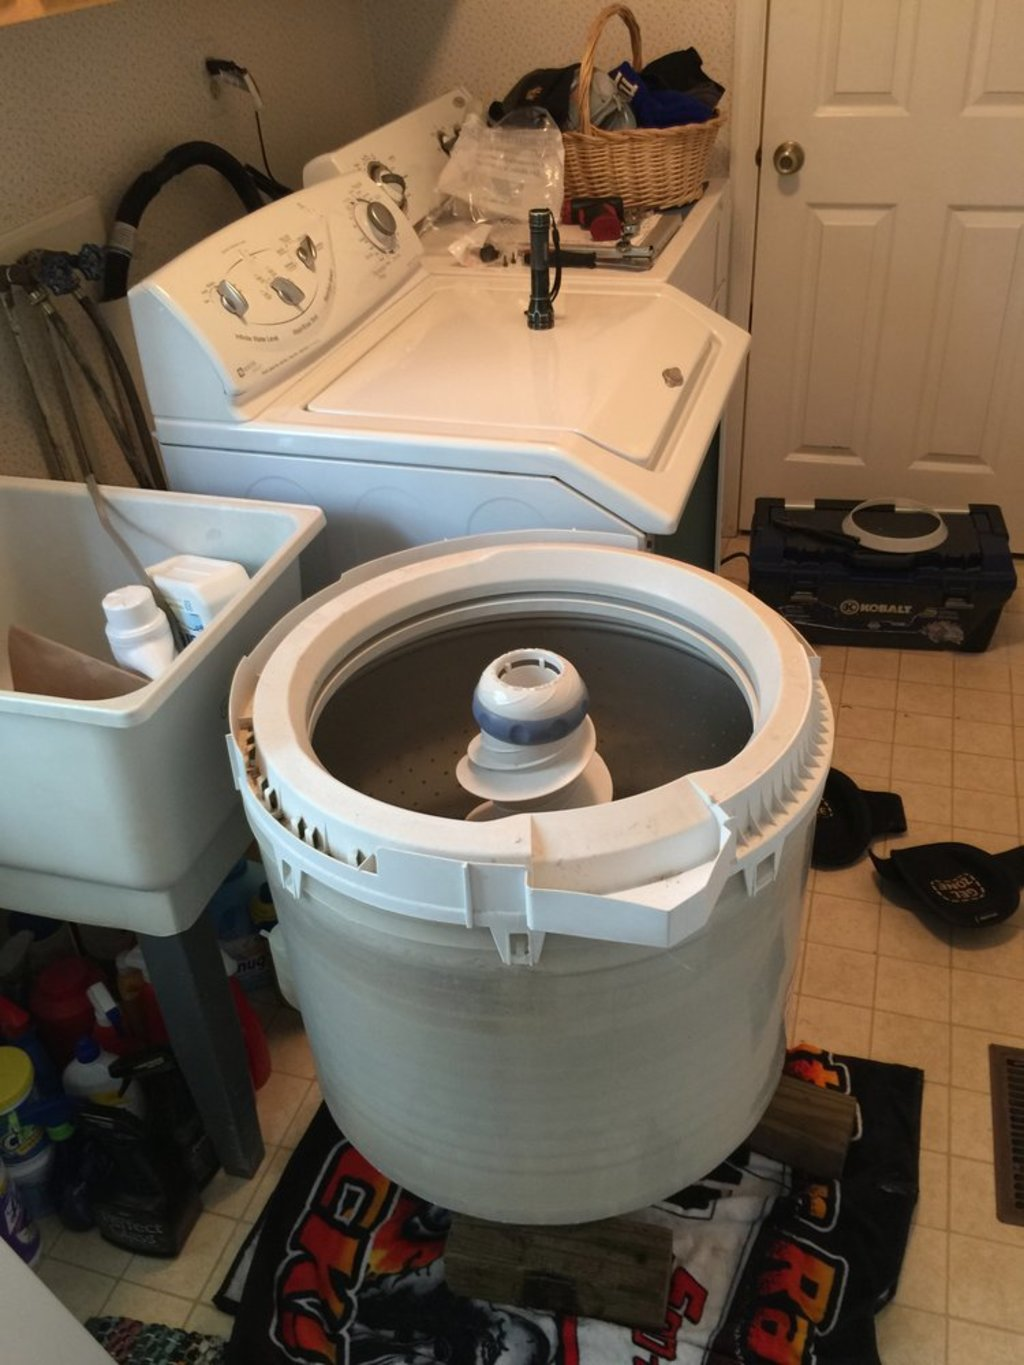 Northeast Appliance Service - Fixing a Dryer